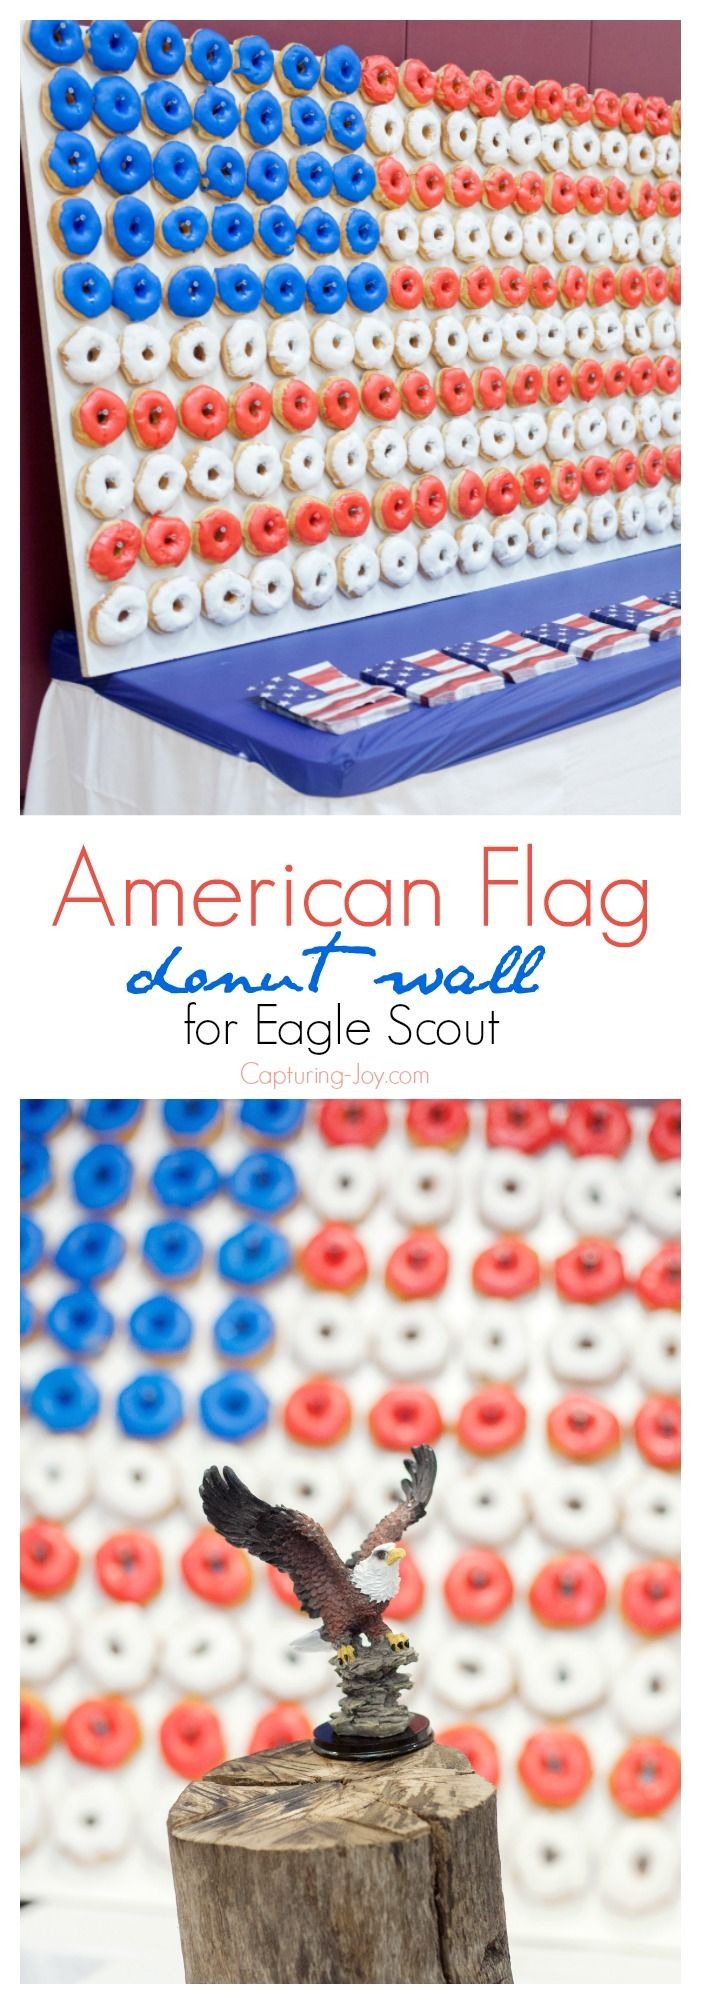 American Flag Donut Wall for Eagle Scout Court of Honor. - Capturing-Joy.com